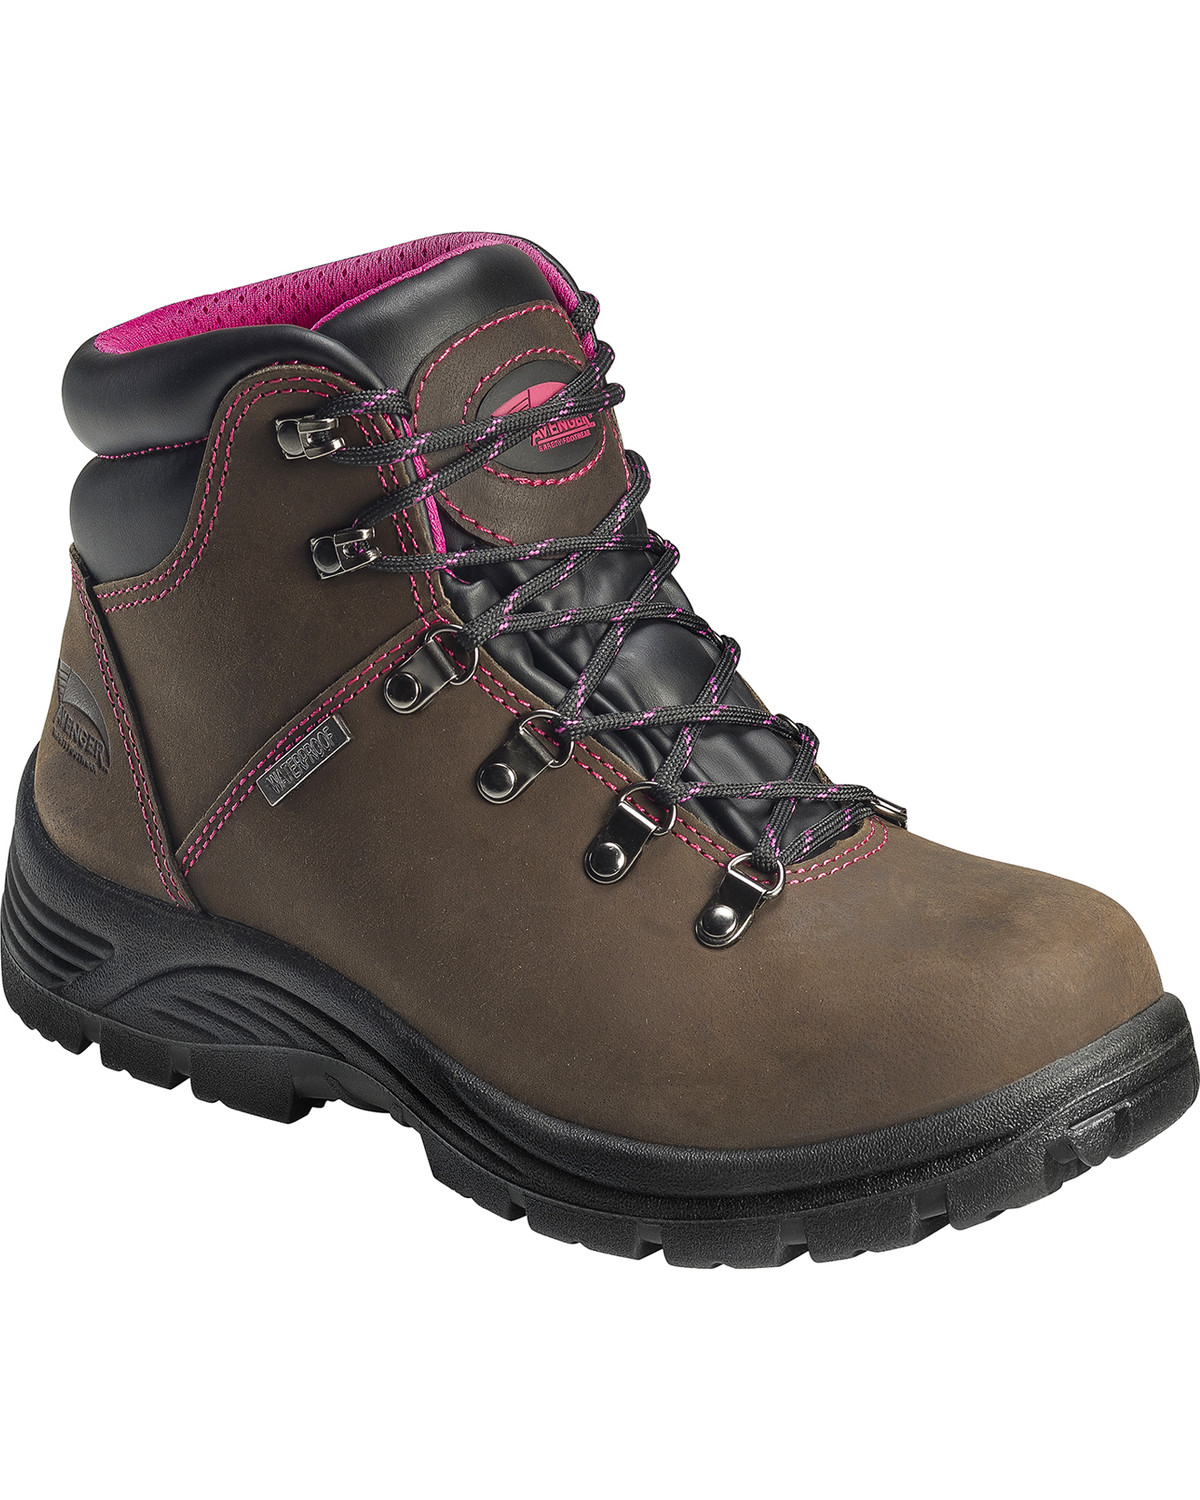 Original Merrell Decora Sonata Waterproof Womens Brown Waterproof Hiking Boots Shoes | EBay